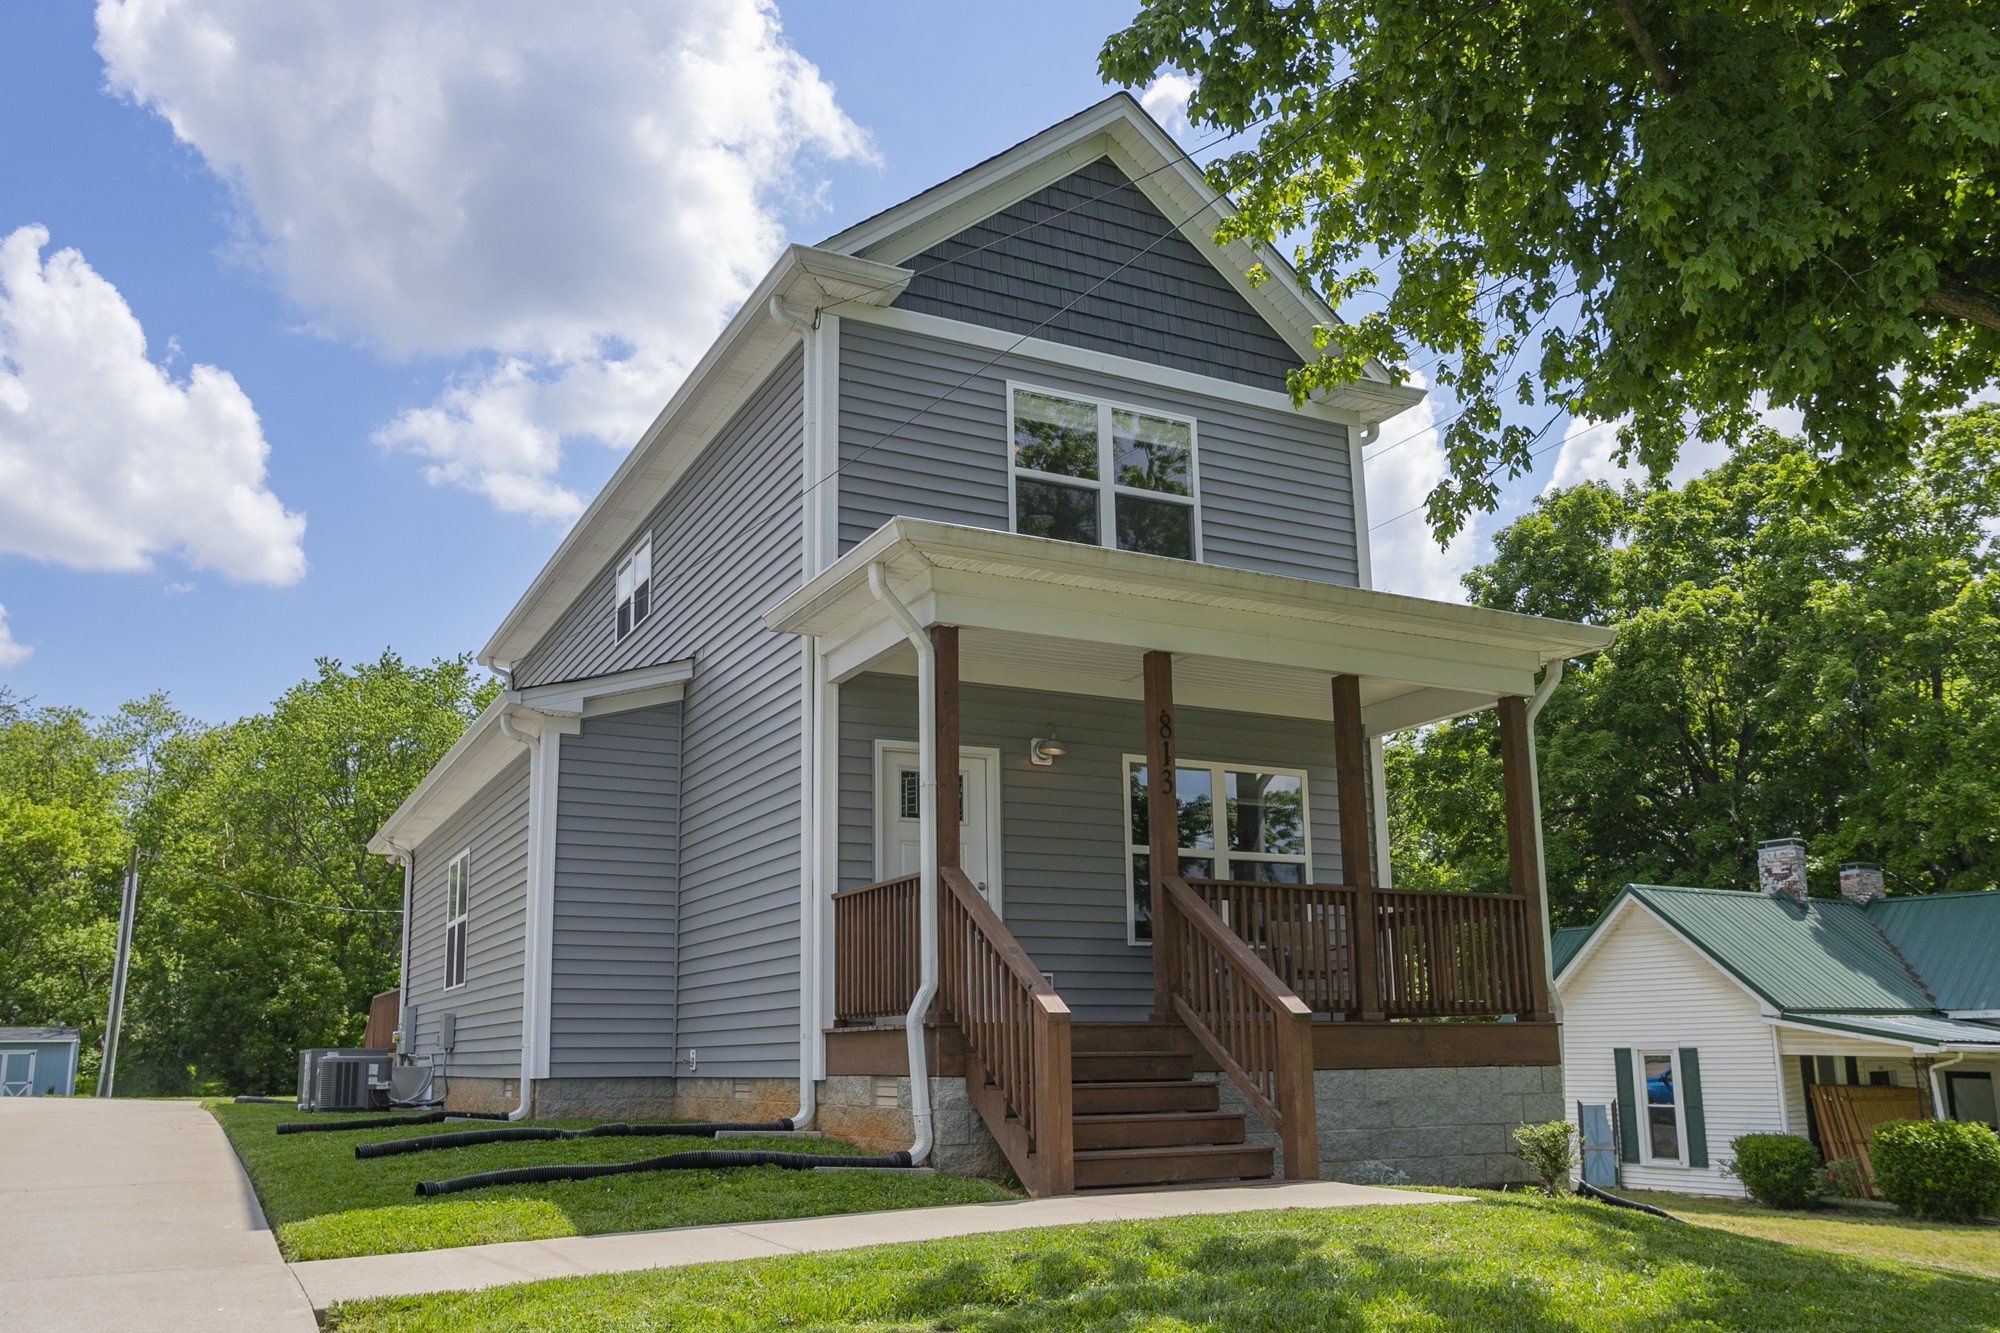 813 5th Ave, E Property Photo - Springfield, TN real estate listing